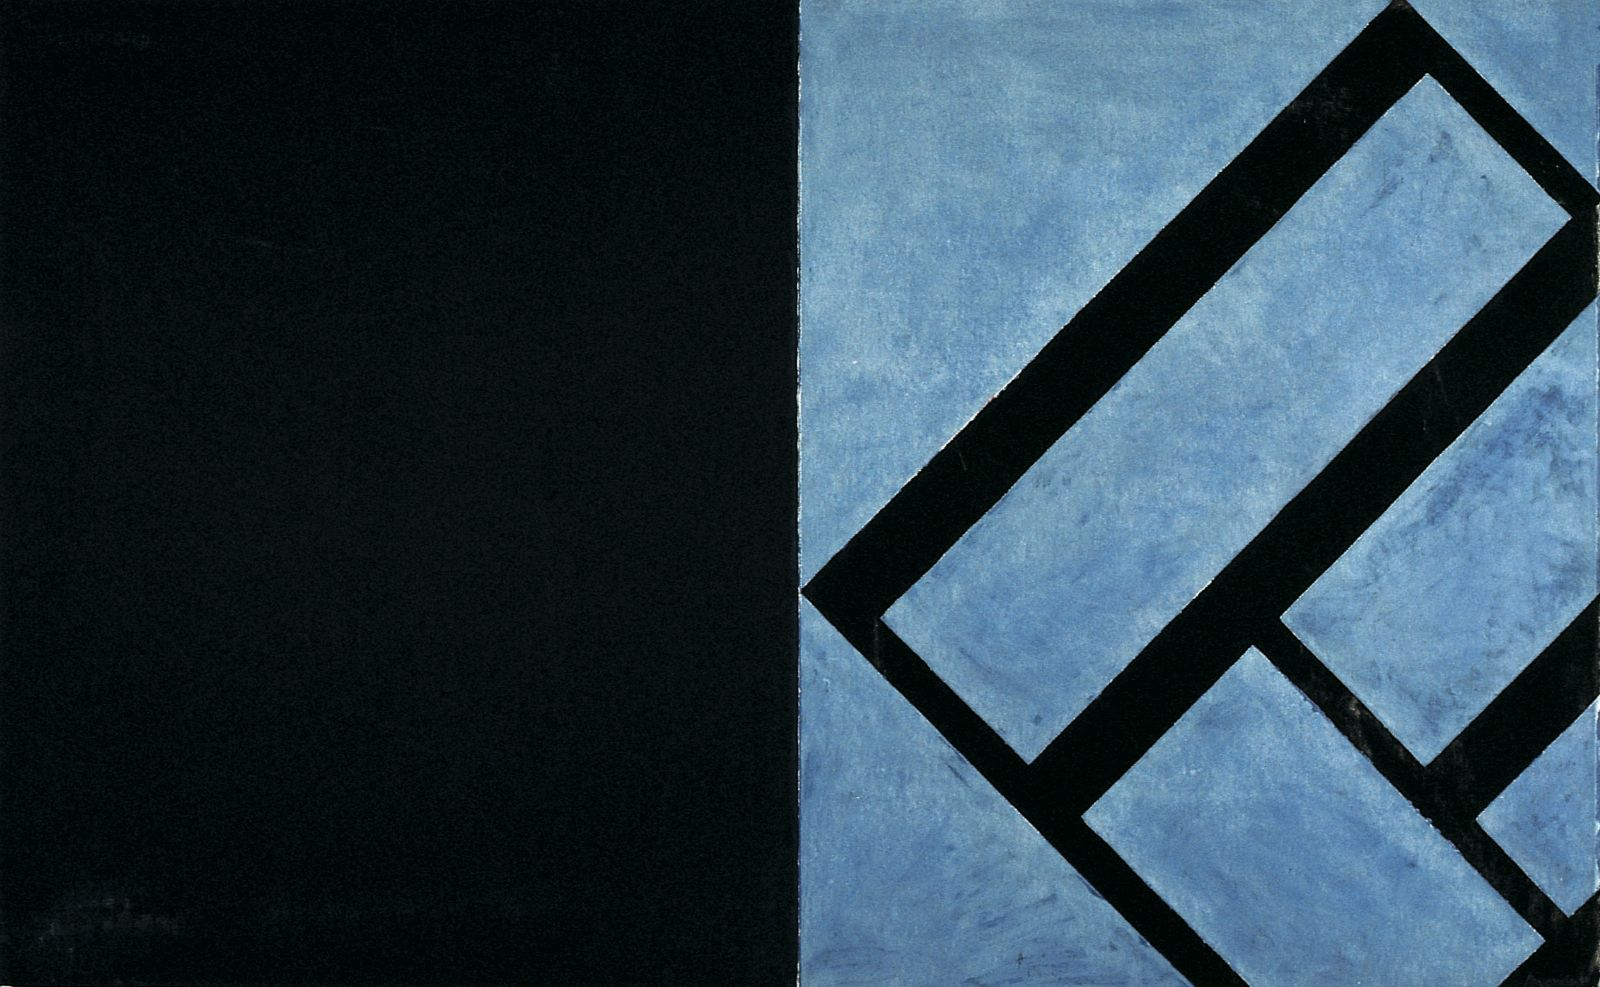 Monotype W9, 1990, oil on paper, monotype, 127 x 206 cm